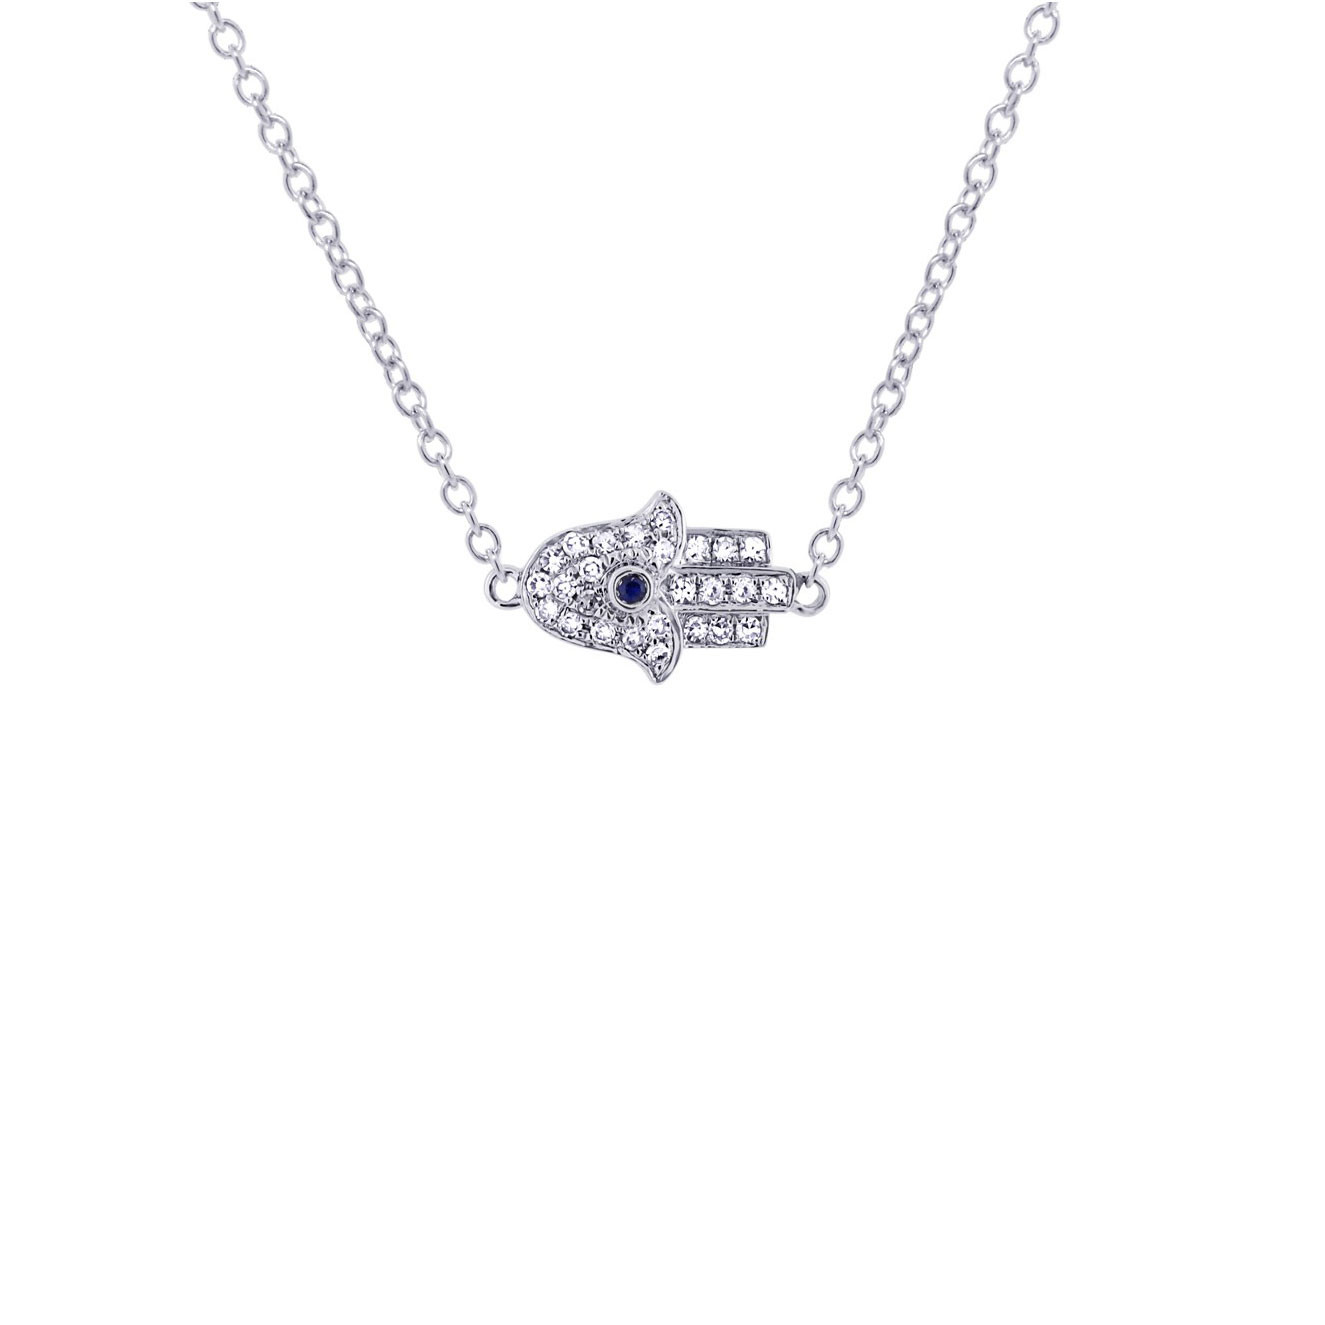 Diamond white gold hamsa necklace with sapphire detail 14k white gold diamondsapphire hamsa necklace mozeypictures Images